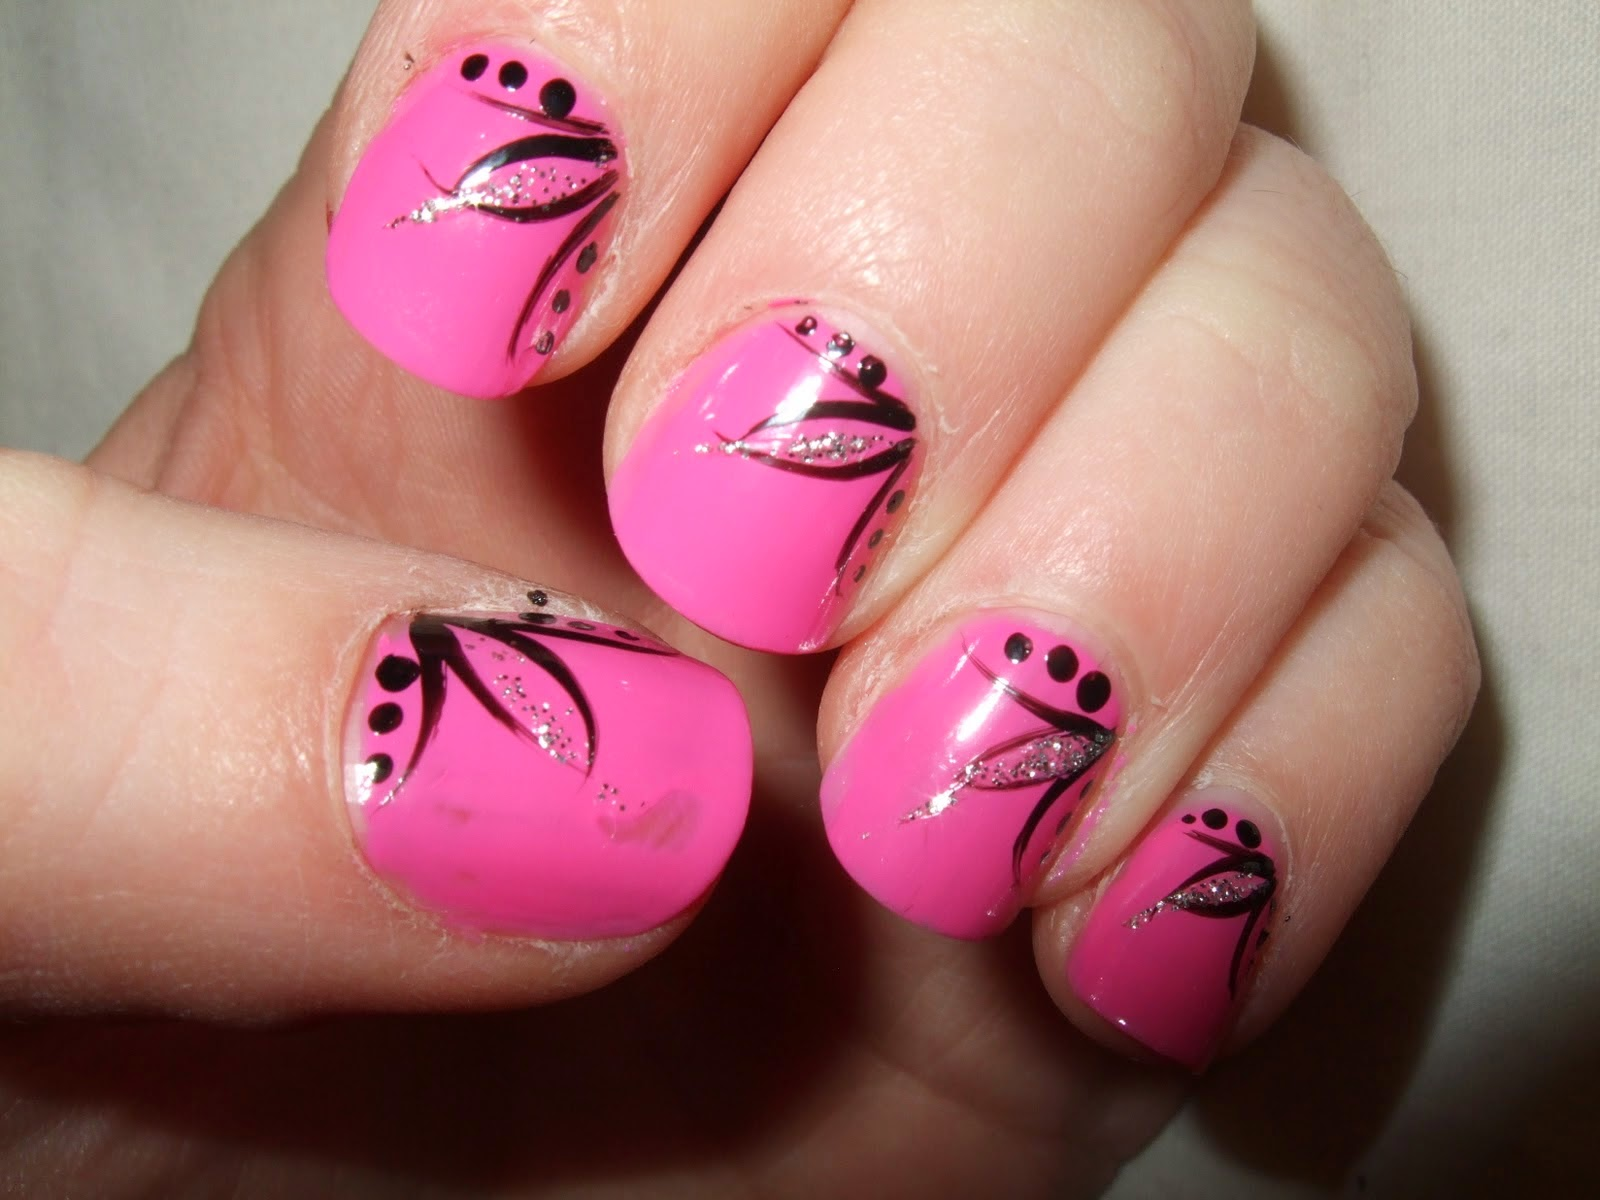 Nail design nail art designs easy nail art designs prinsesfo Image collections